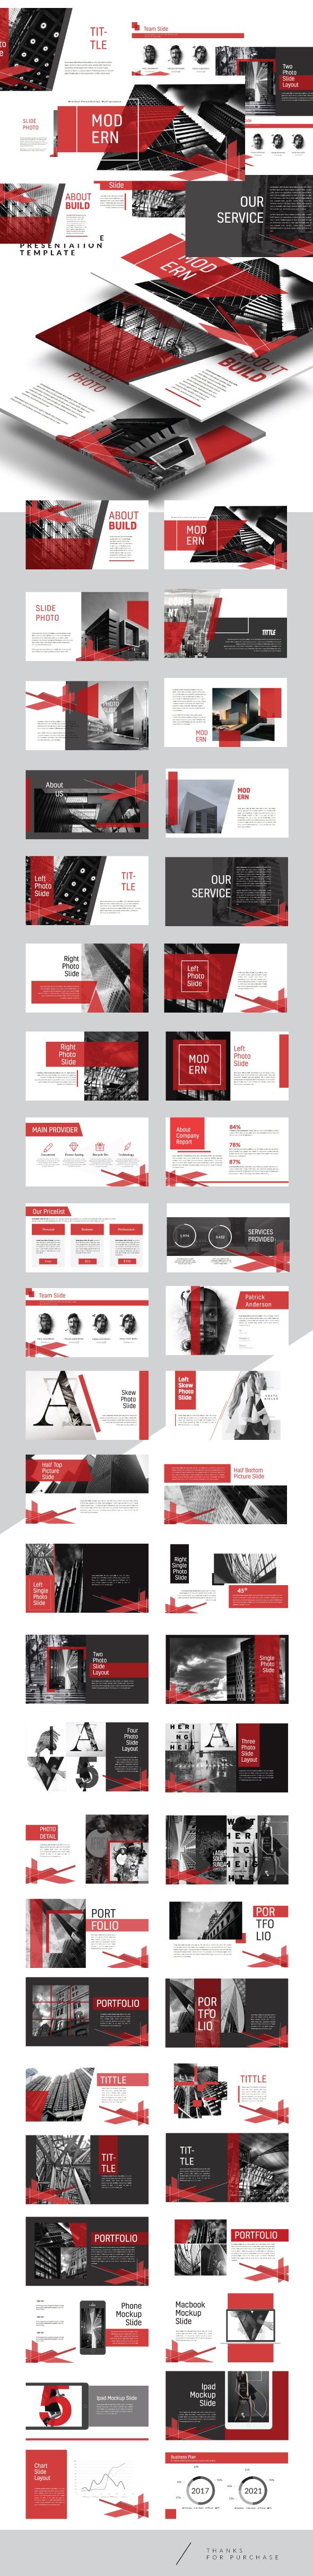 Arch - Creative Multipurpose PPT Template - Creative PowerPoint Templates